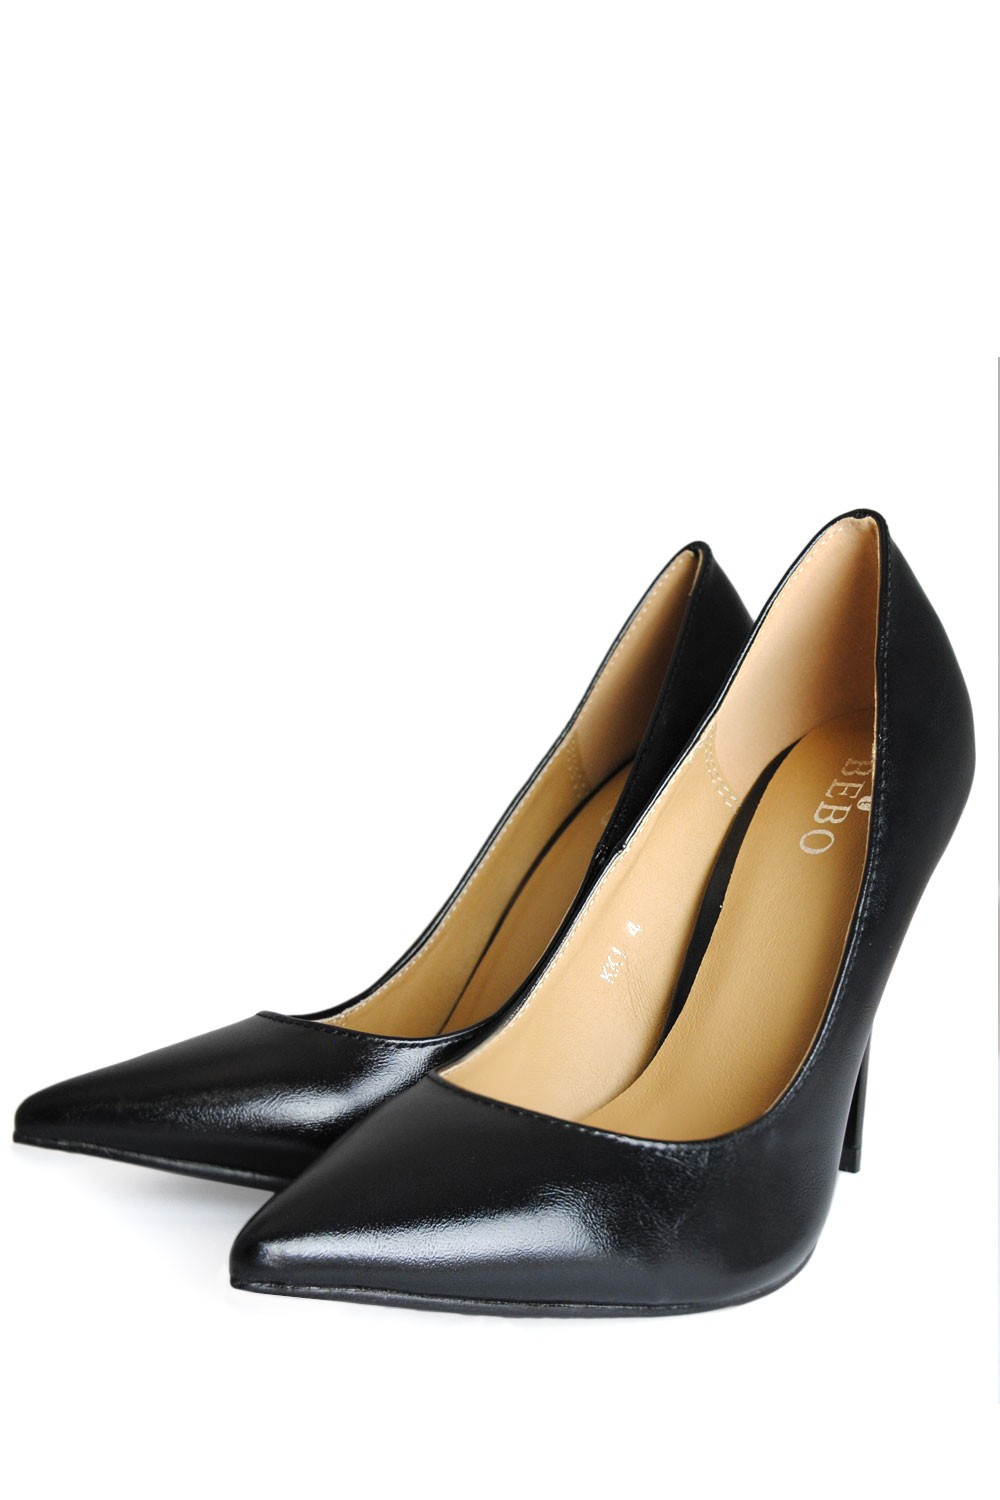 indigo footwear abby pointed court shoes in black iclothing